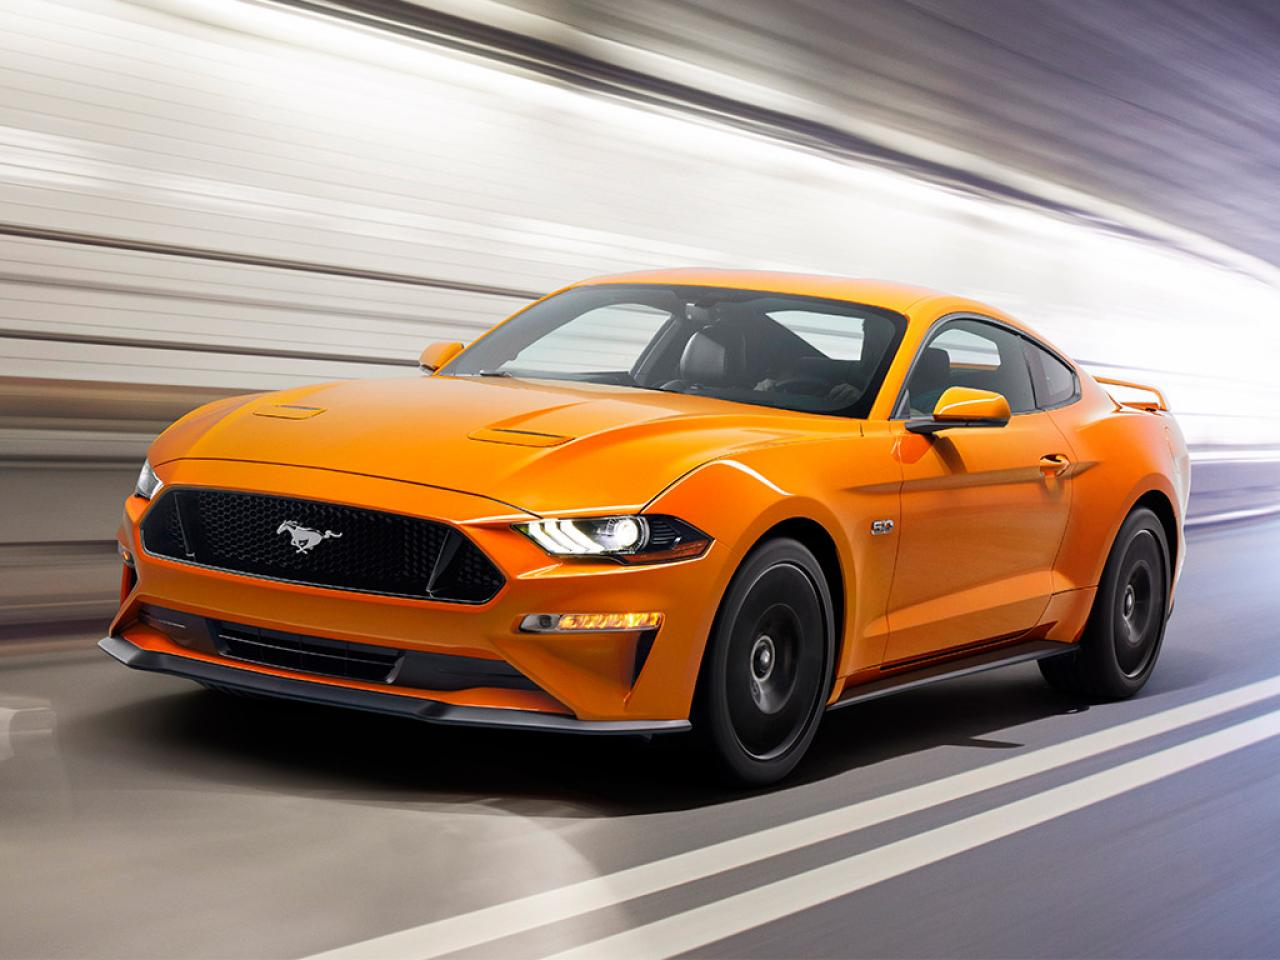 2018 ford mustang breaks cover; gets more power and a new 10-speed